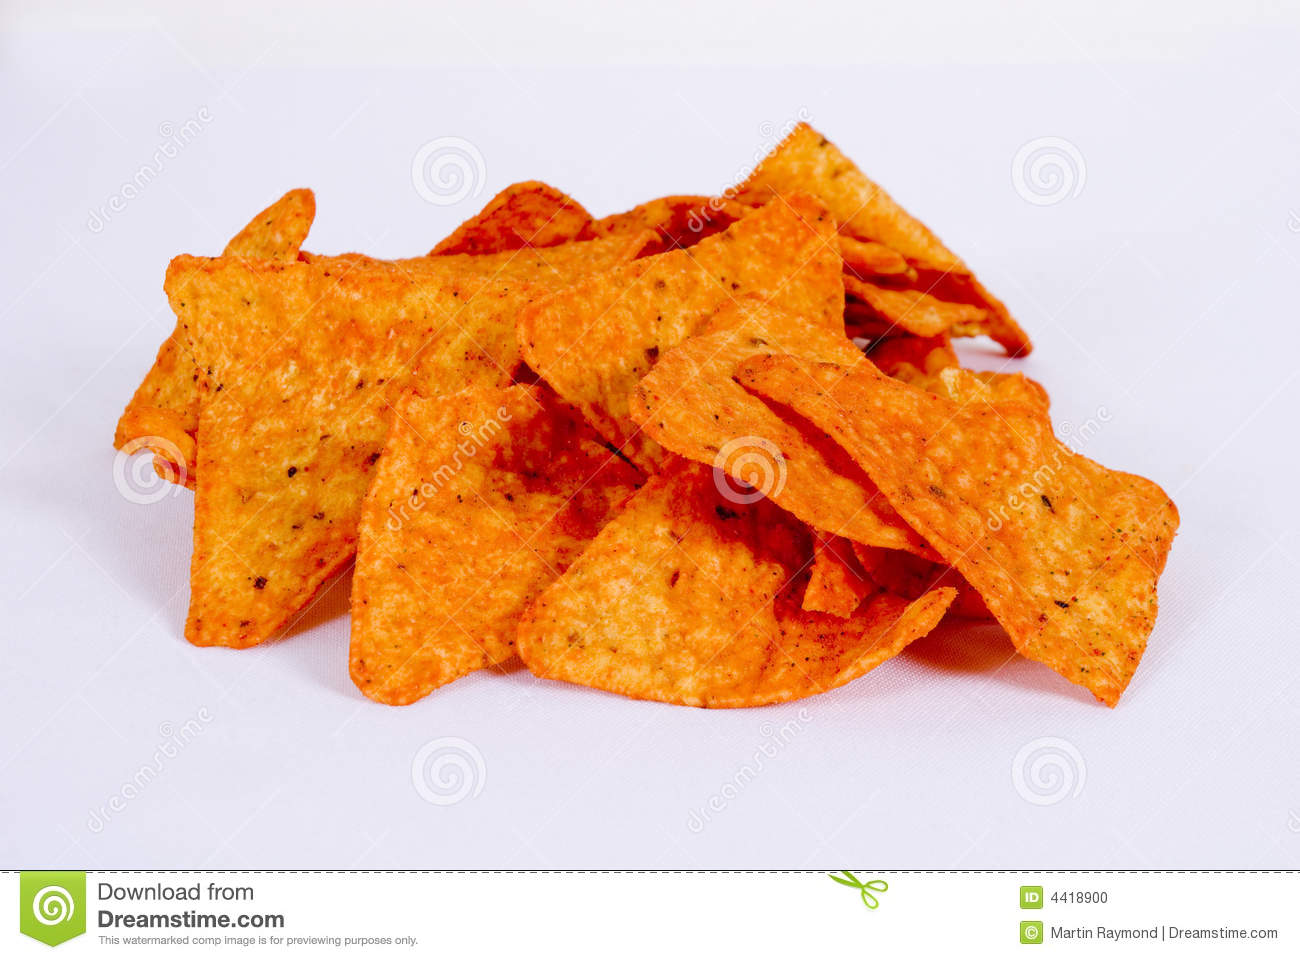 mountain of corn chips doritos spiced on a white background.